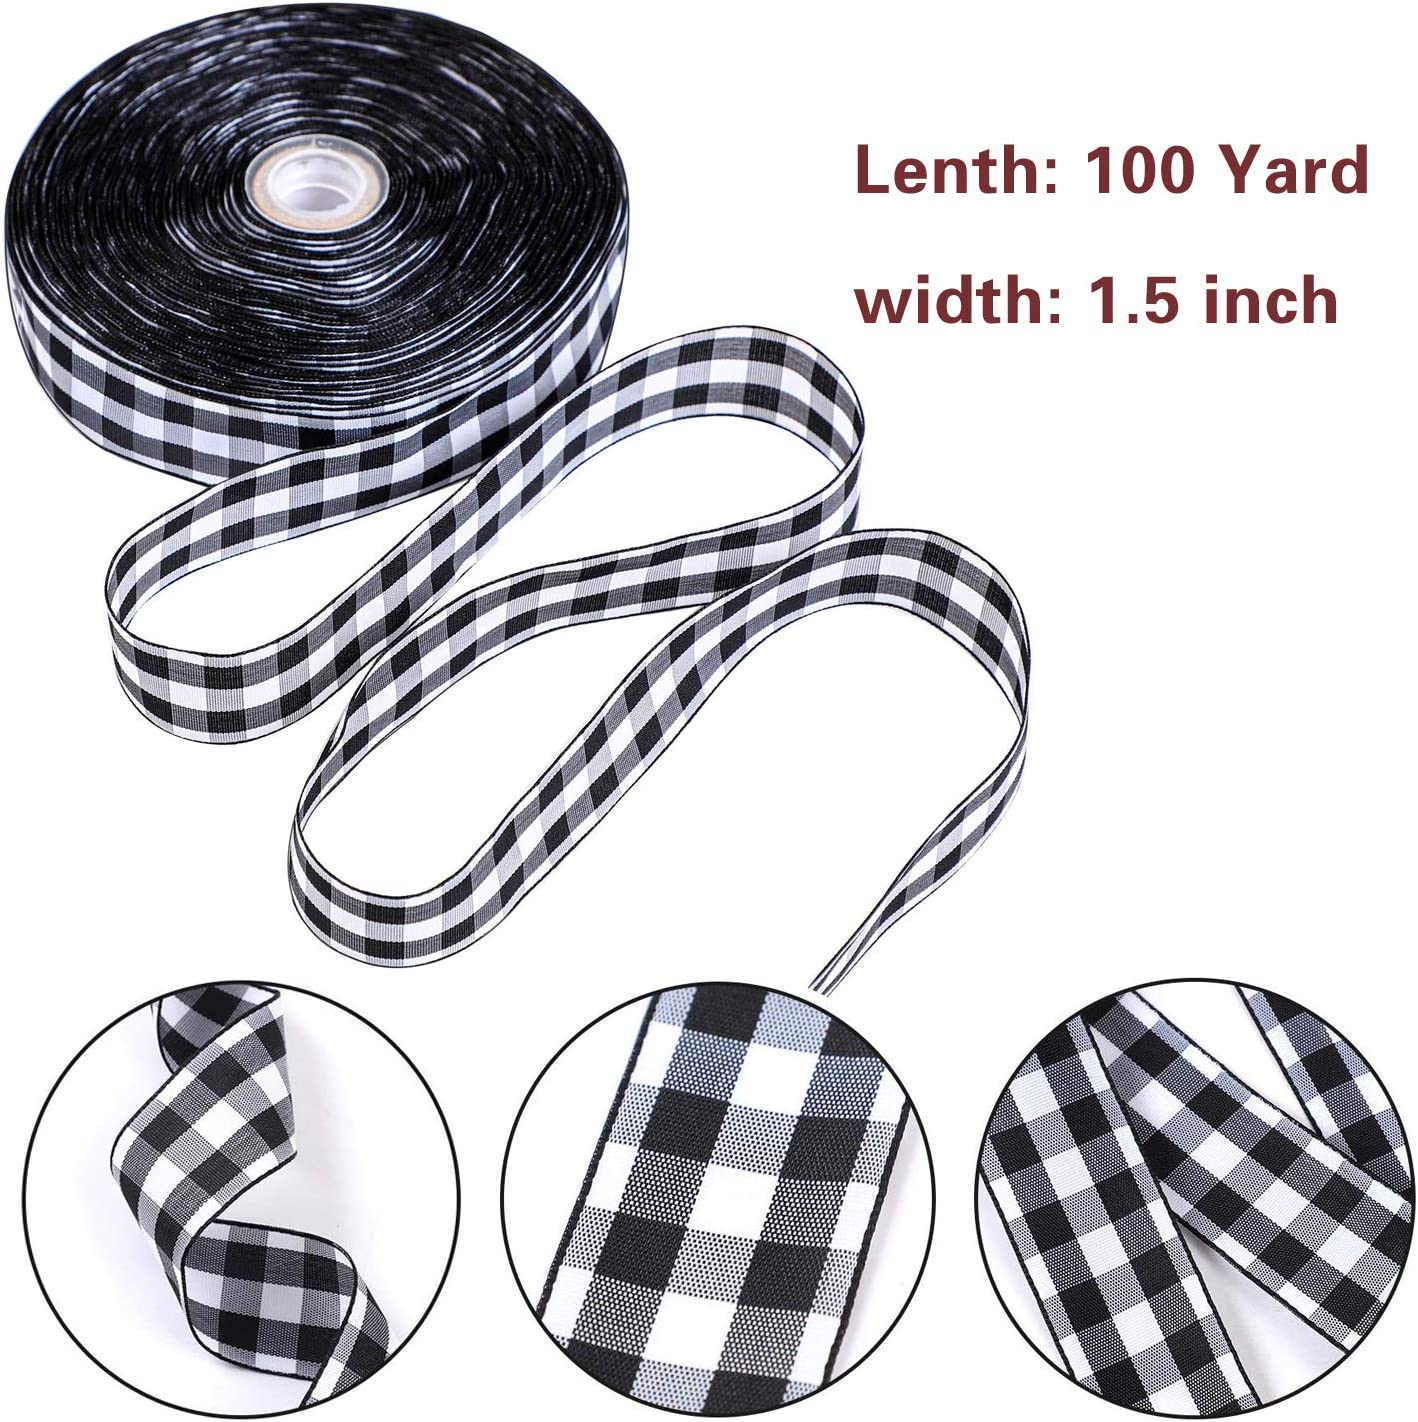 Floral Bows Onene 100 Yards 1.5 Inches Black and White Plaid Burlap Ribbon Christmas Wrapping Ribbon Gingham Plaid Ribbon for DIY Crafts Decoration